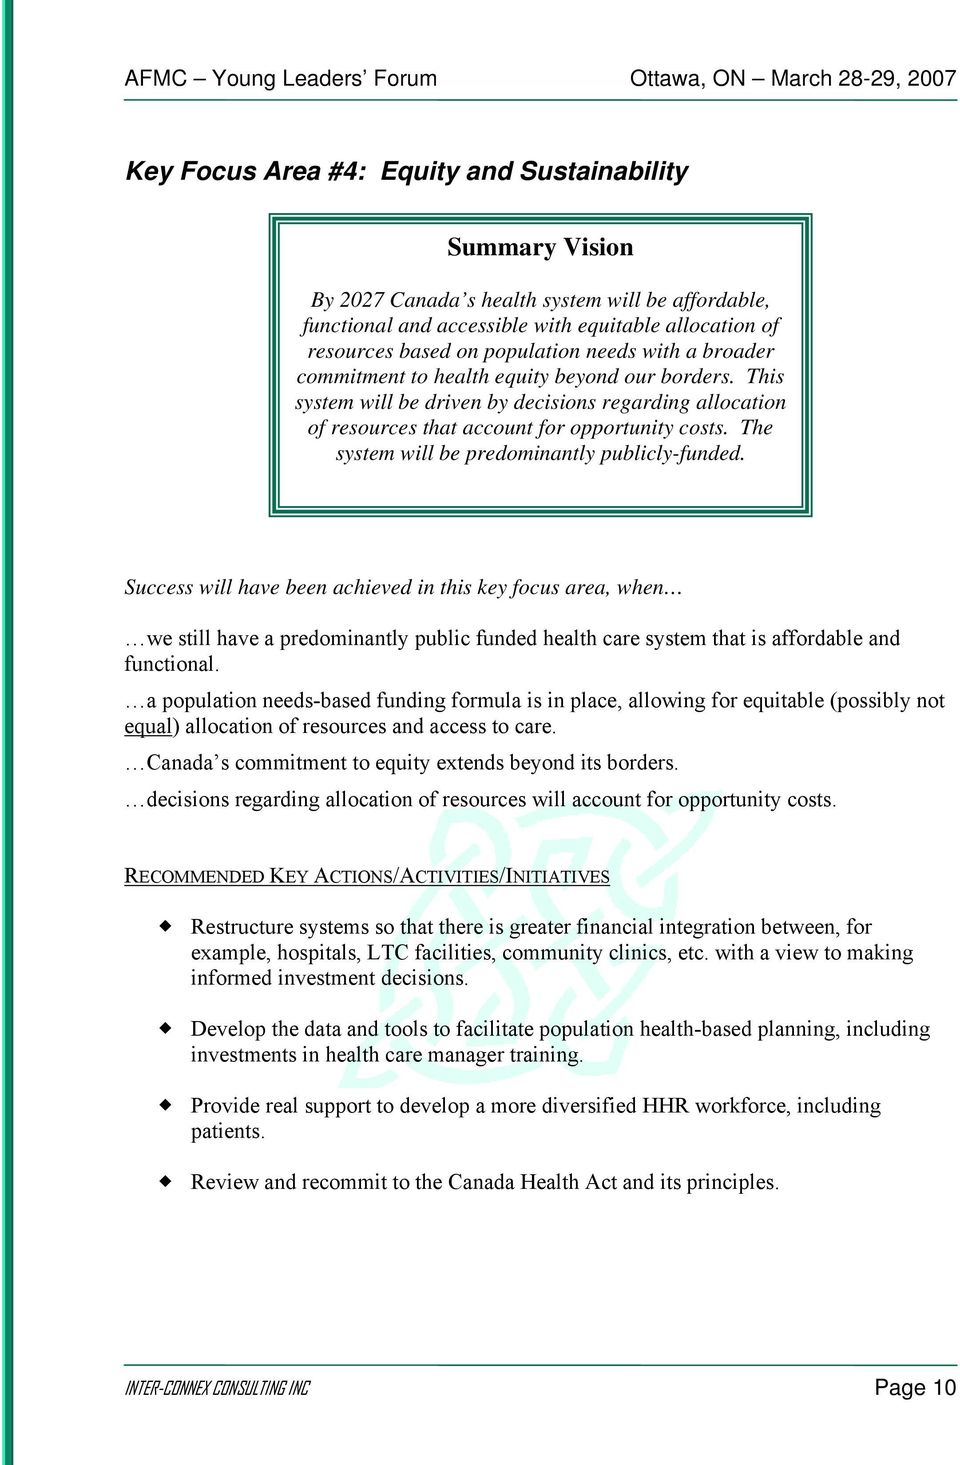 The system will be predominantly publicly-funded.